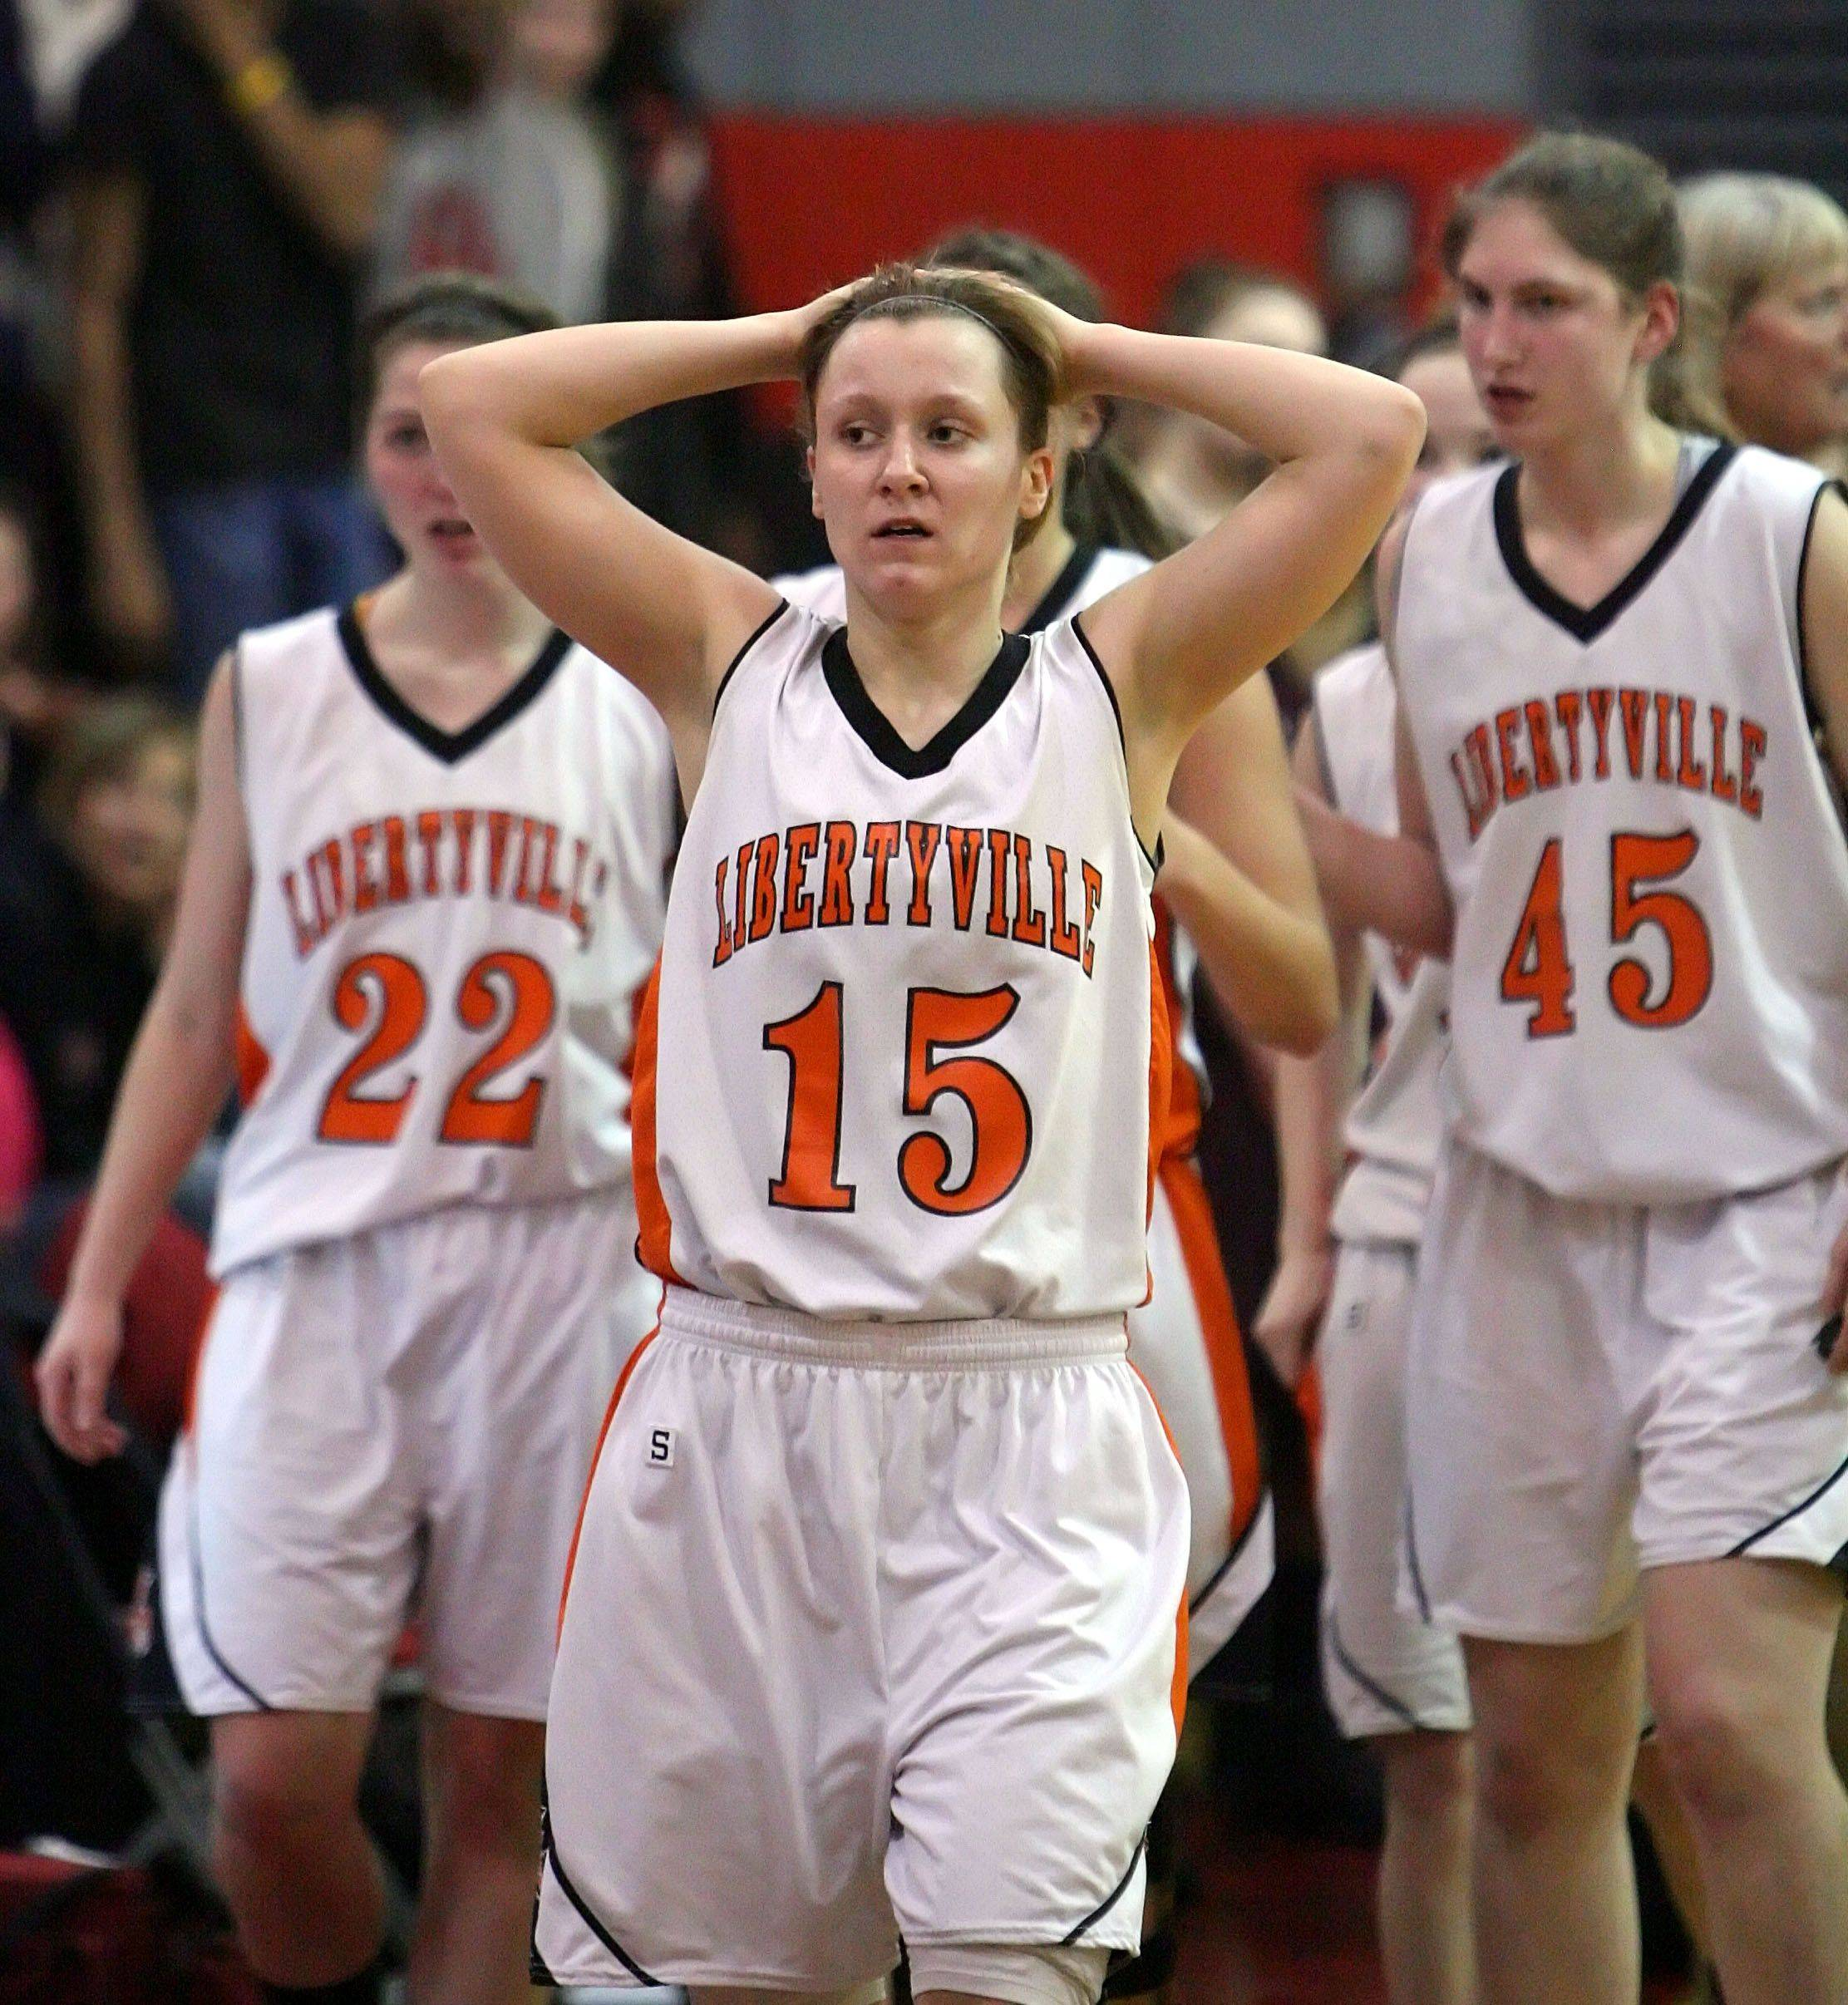 Libertyville's, from left, Olivia Wilcox, Alex Haley and Nicole Kruckman walk off the basketball court stunned after losing to Zion-Benton.